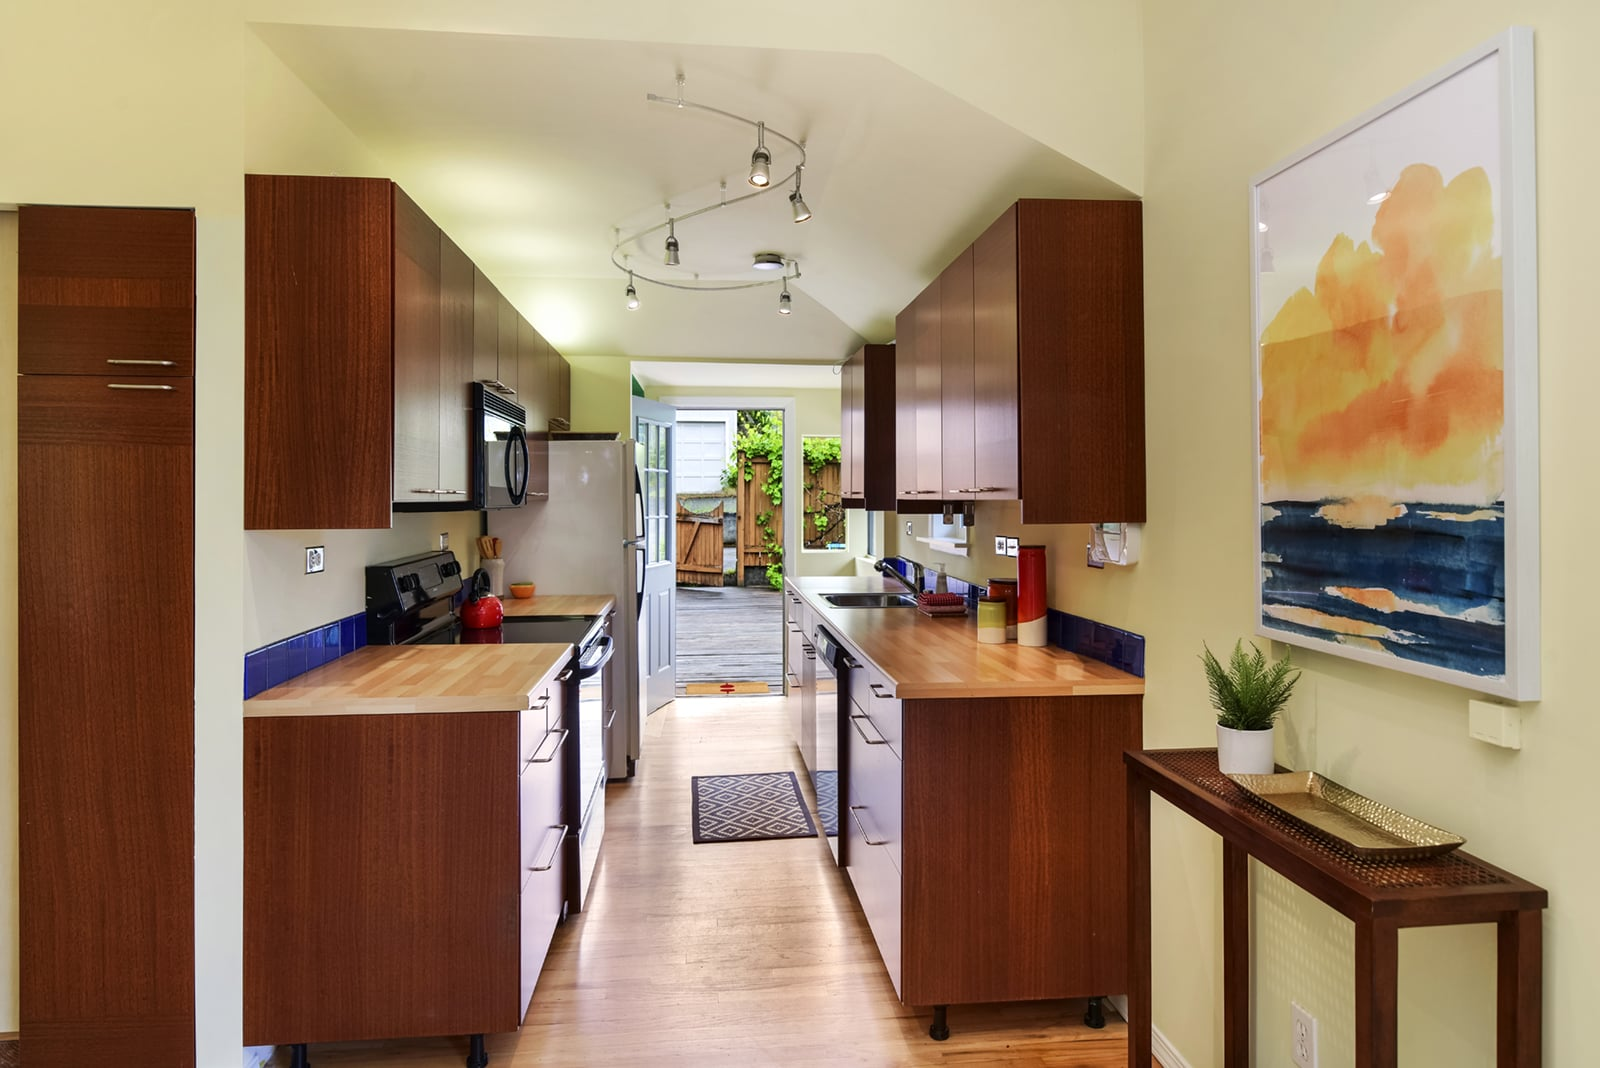 4158 46th Ave SW - 008